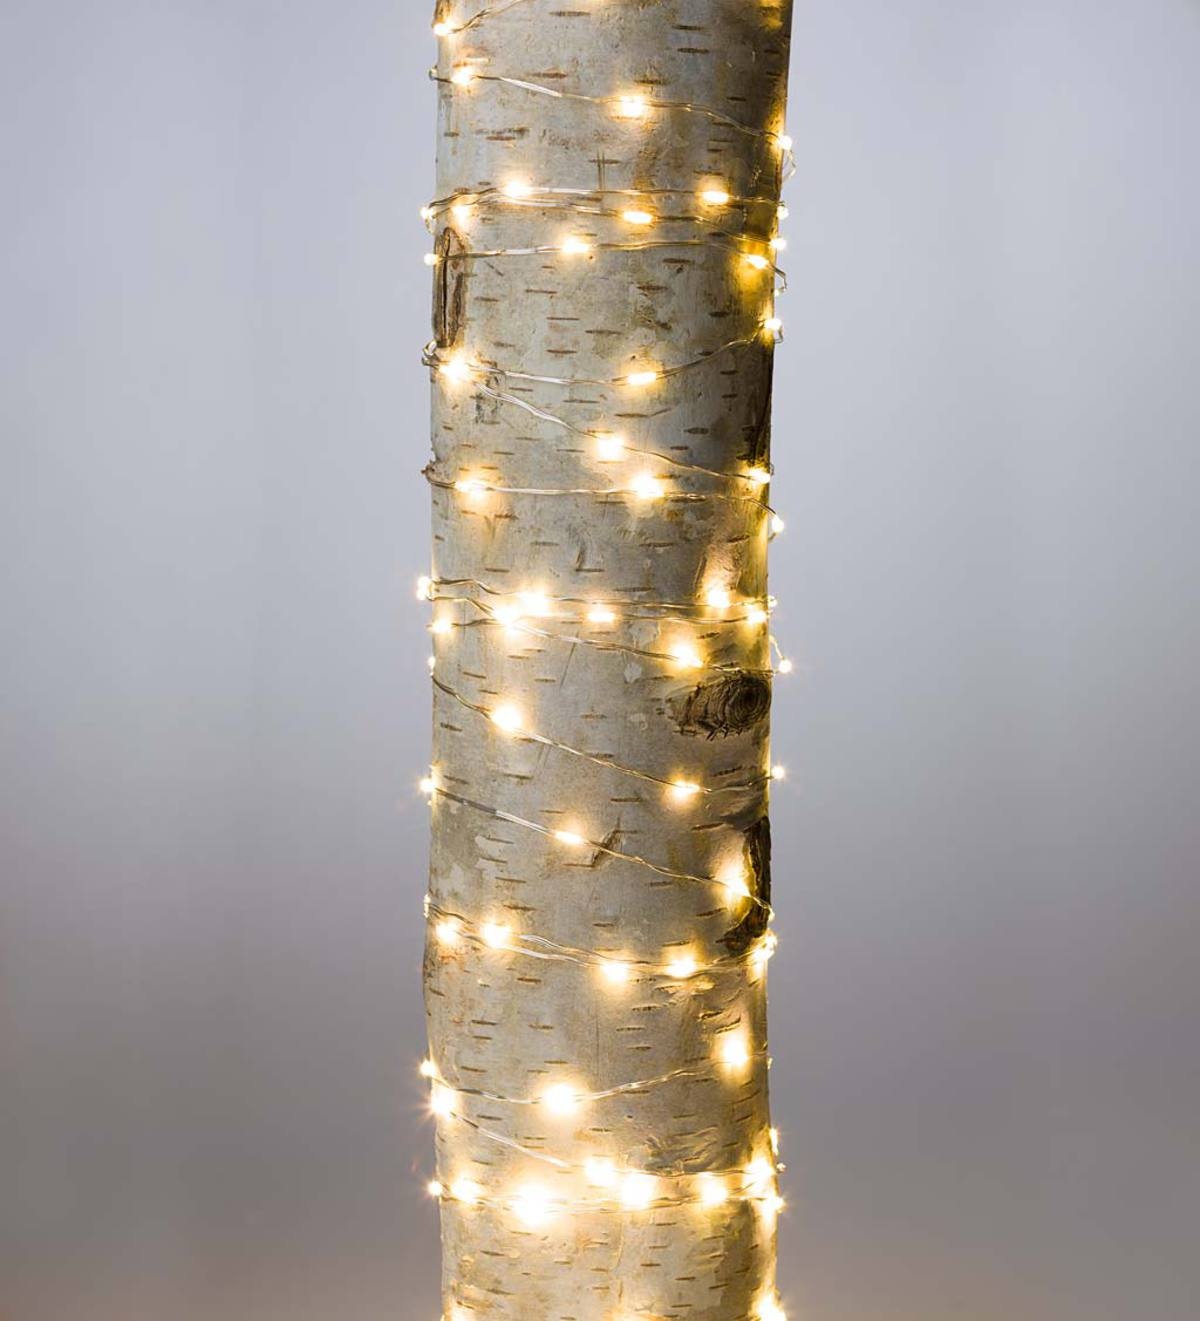 Firefly String Lights, 240 Warm White LEDs on Bendable Wire, Electric, 40'L - Silver